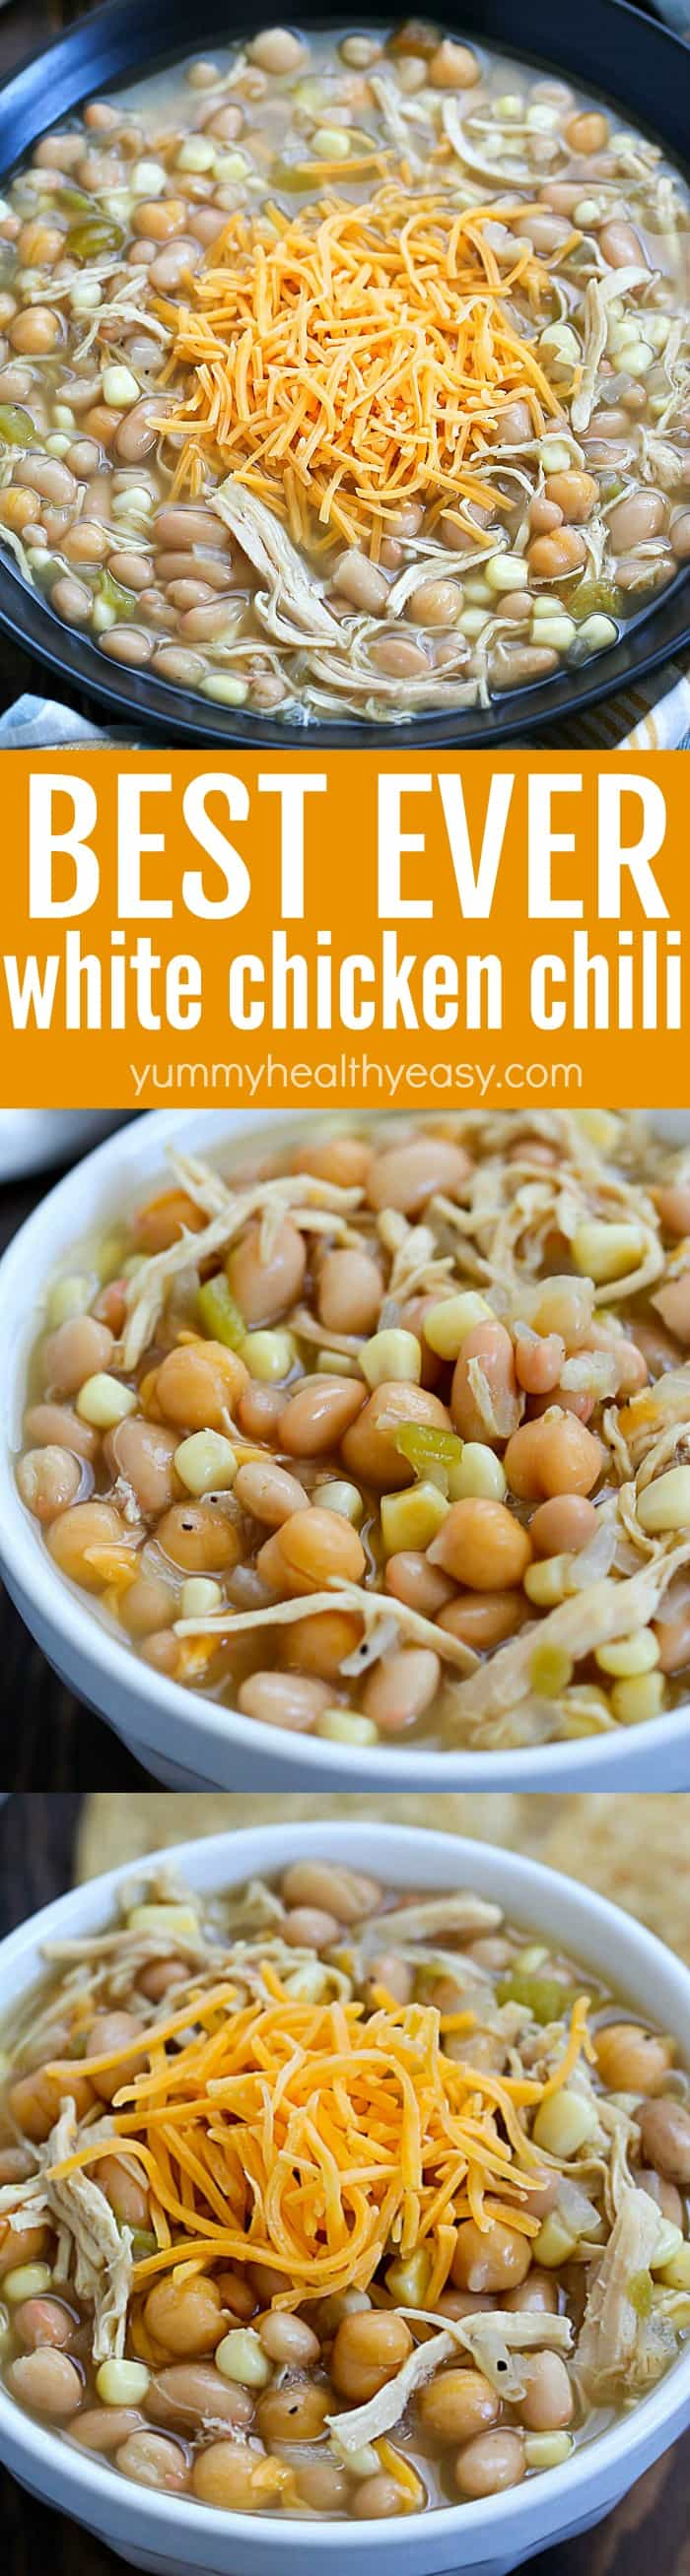 This is the BEST EVER White Chicken Chili recipe!! It's my very favorite white chicken chili recipe. It's super easy and everyone loves it! Simple, easy and delicious! Definitely a family pleasing dinner recipe! via @jennikolaus